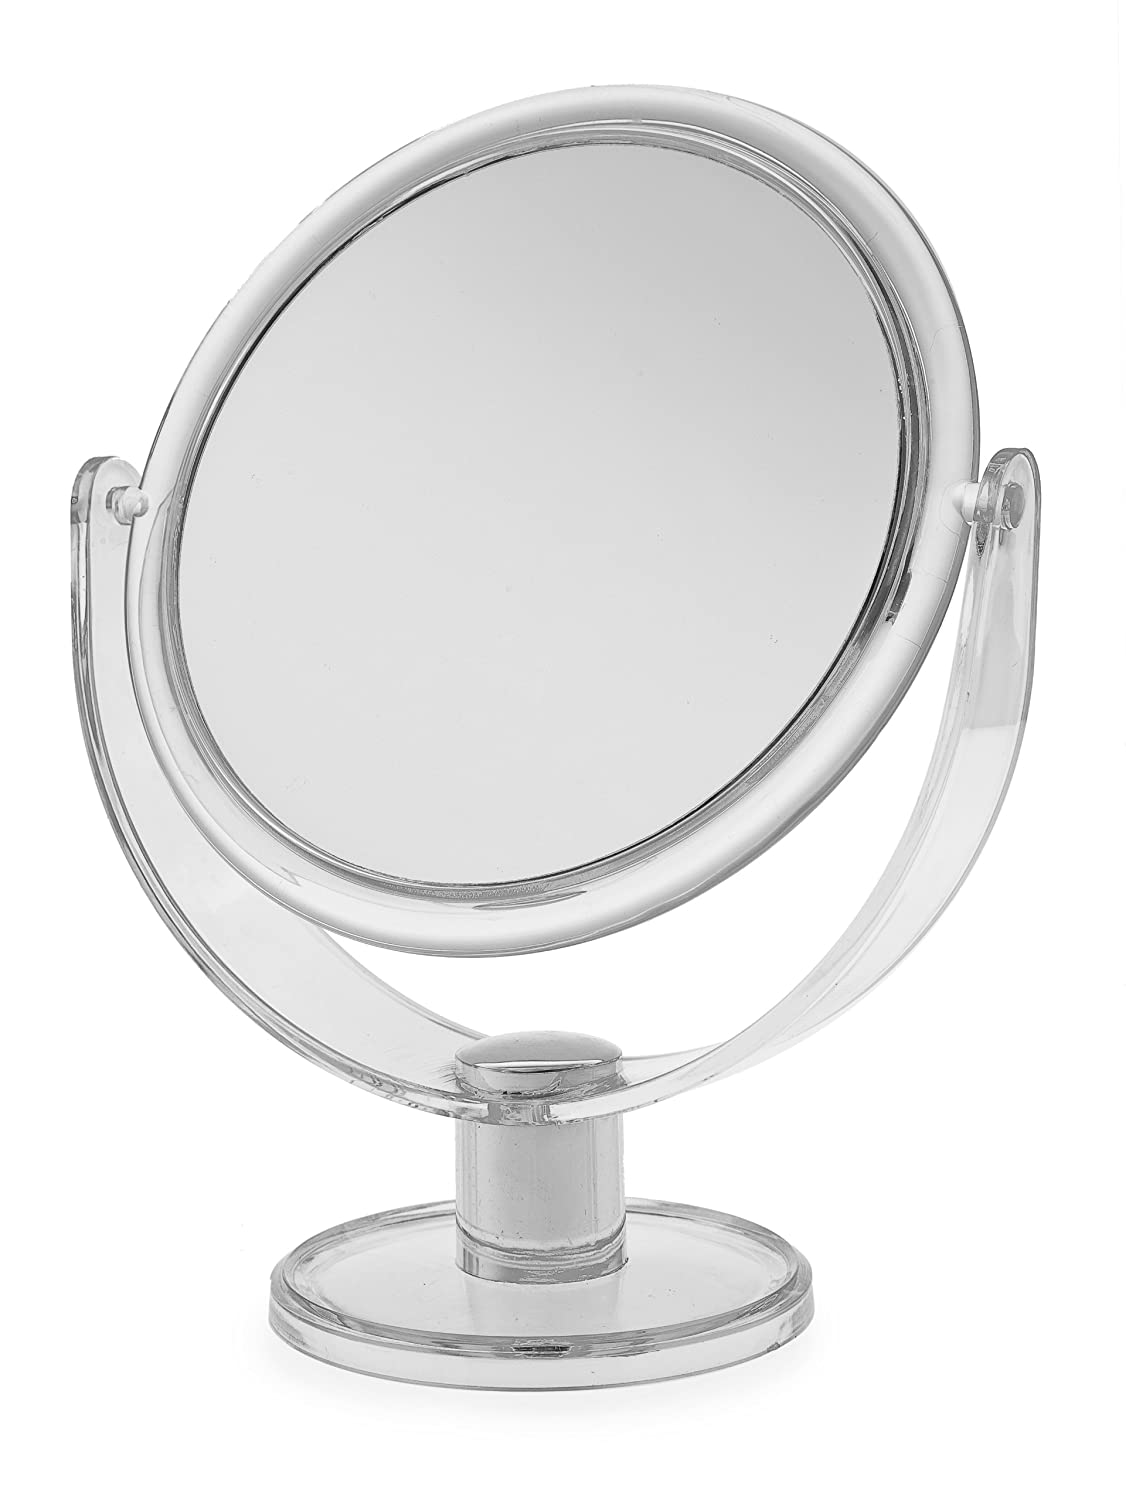 Blue Canyon Plastic Makeup Round Mirror on Stand, Large BA-2019